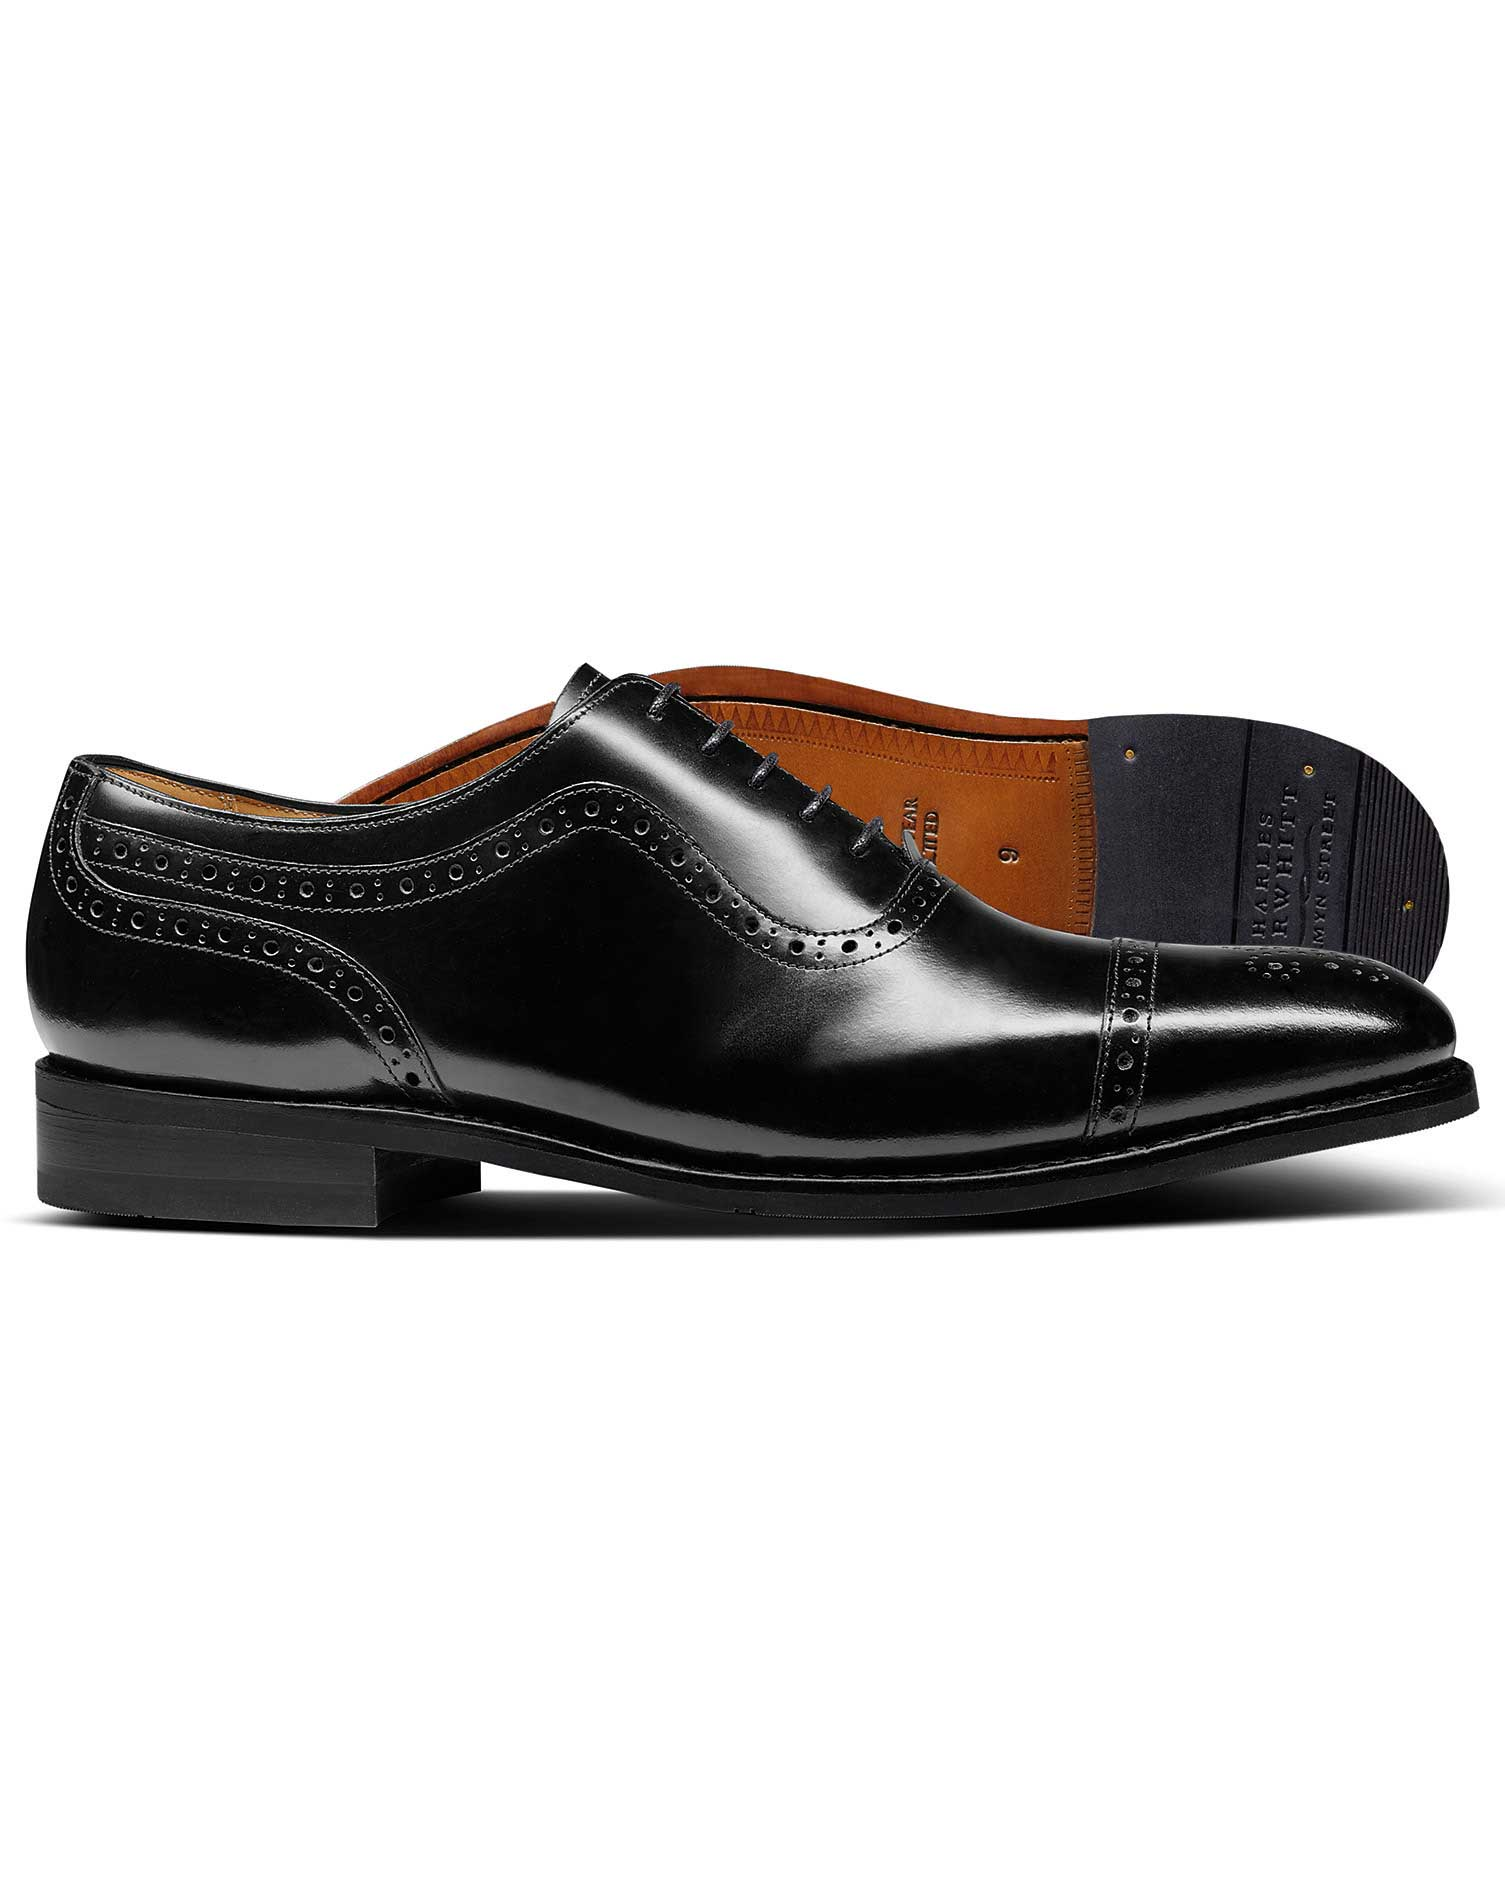 4513d9b84b4 Black Goodyear welted Oxford brogue shoes